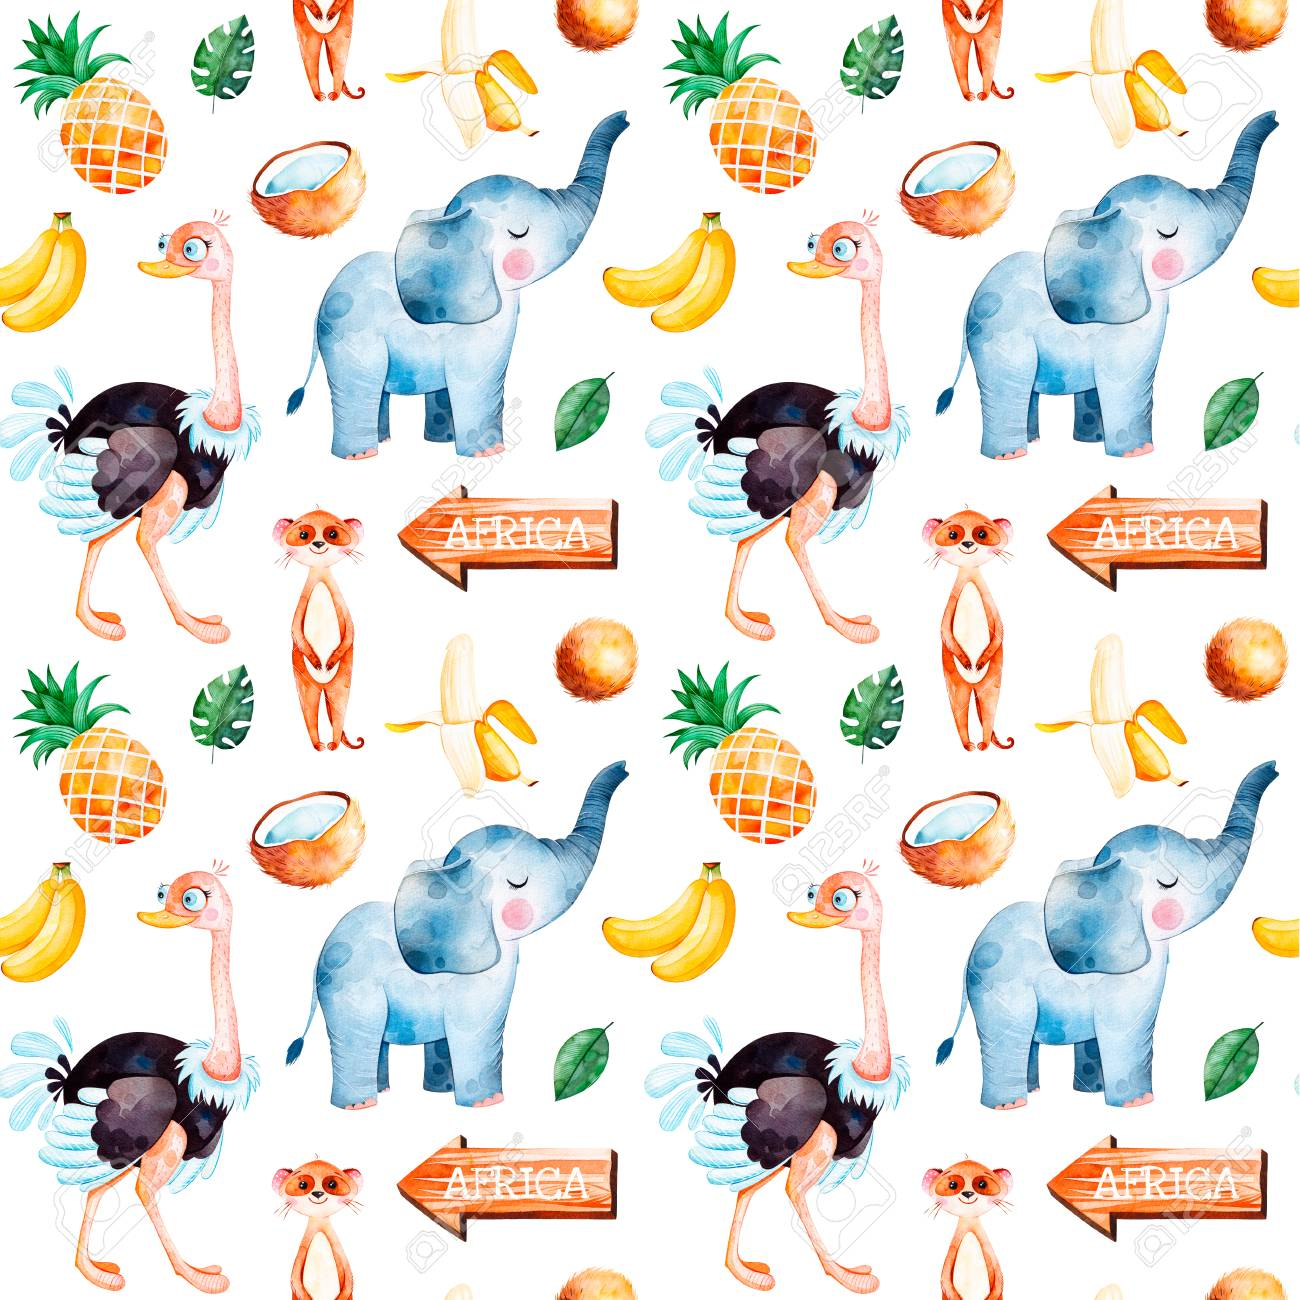 Africa Watercolor Seamless Pattern Safari Collection With Cute